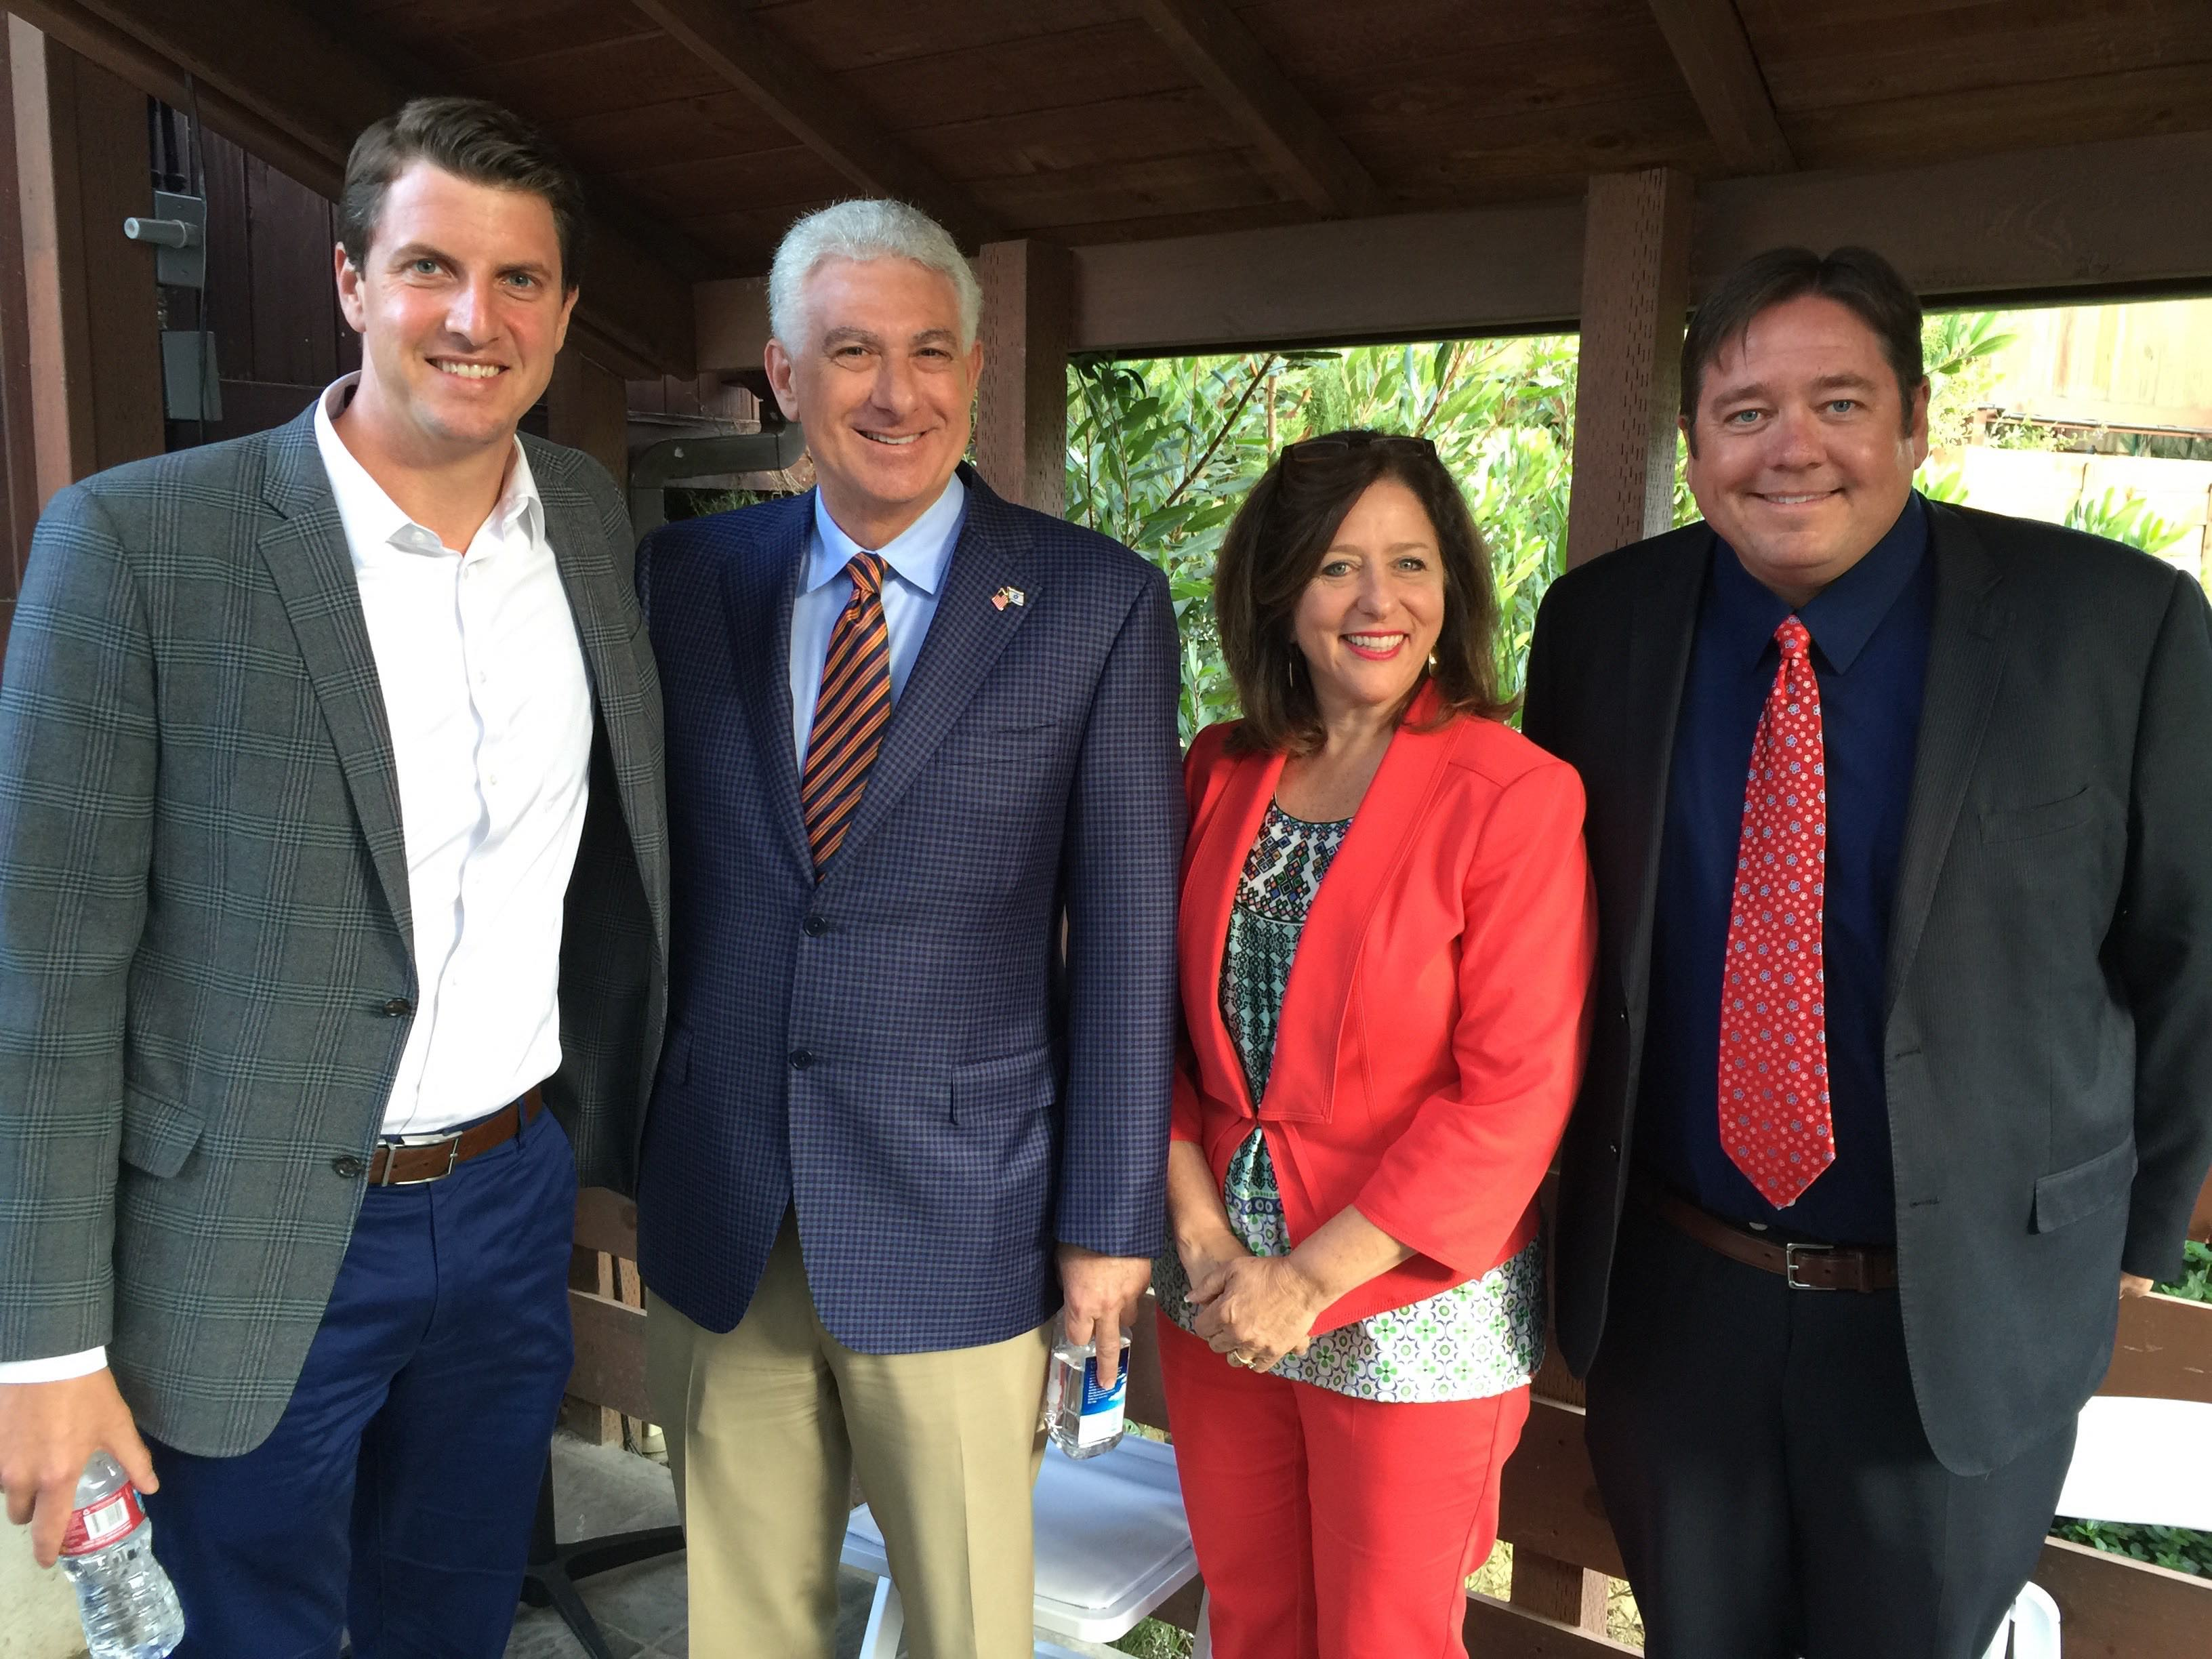 State Senate District 27 Candidates group